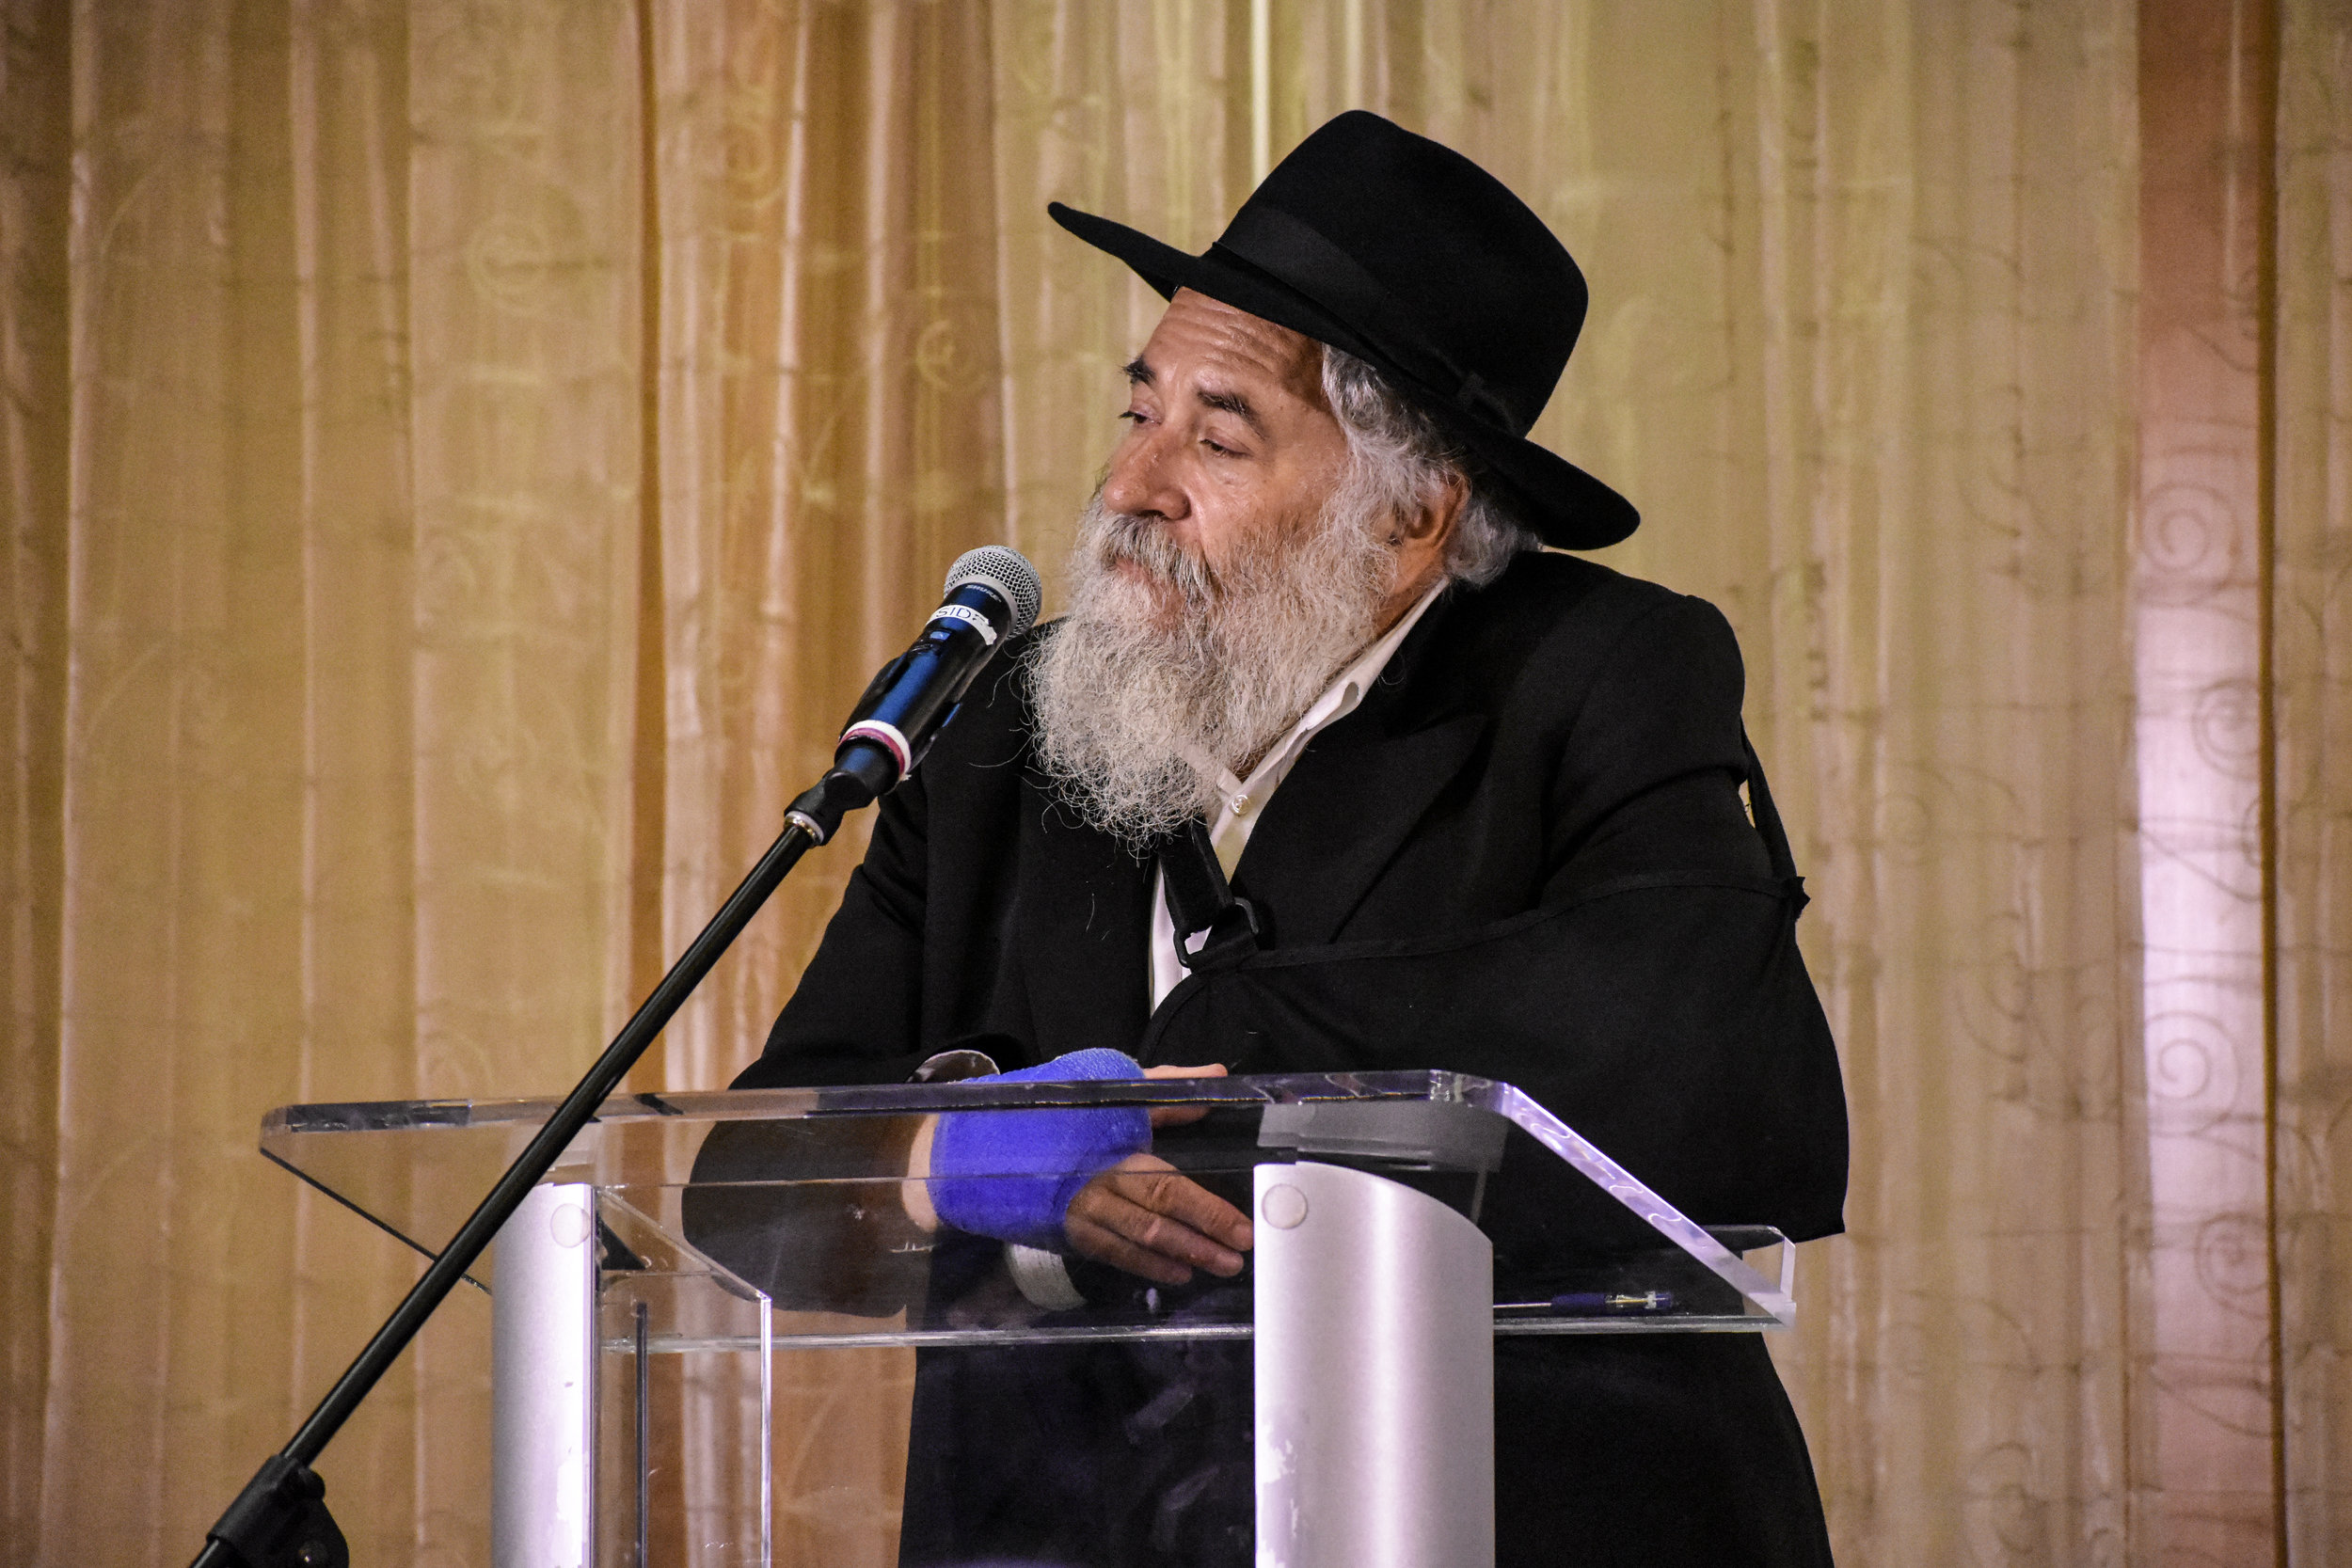 Rabbi Yisroel Goldstein Calls for Religious Freedom in Full, for Individuals and Institutions - by Paul Marshall